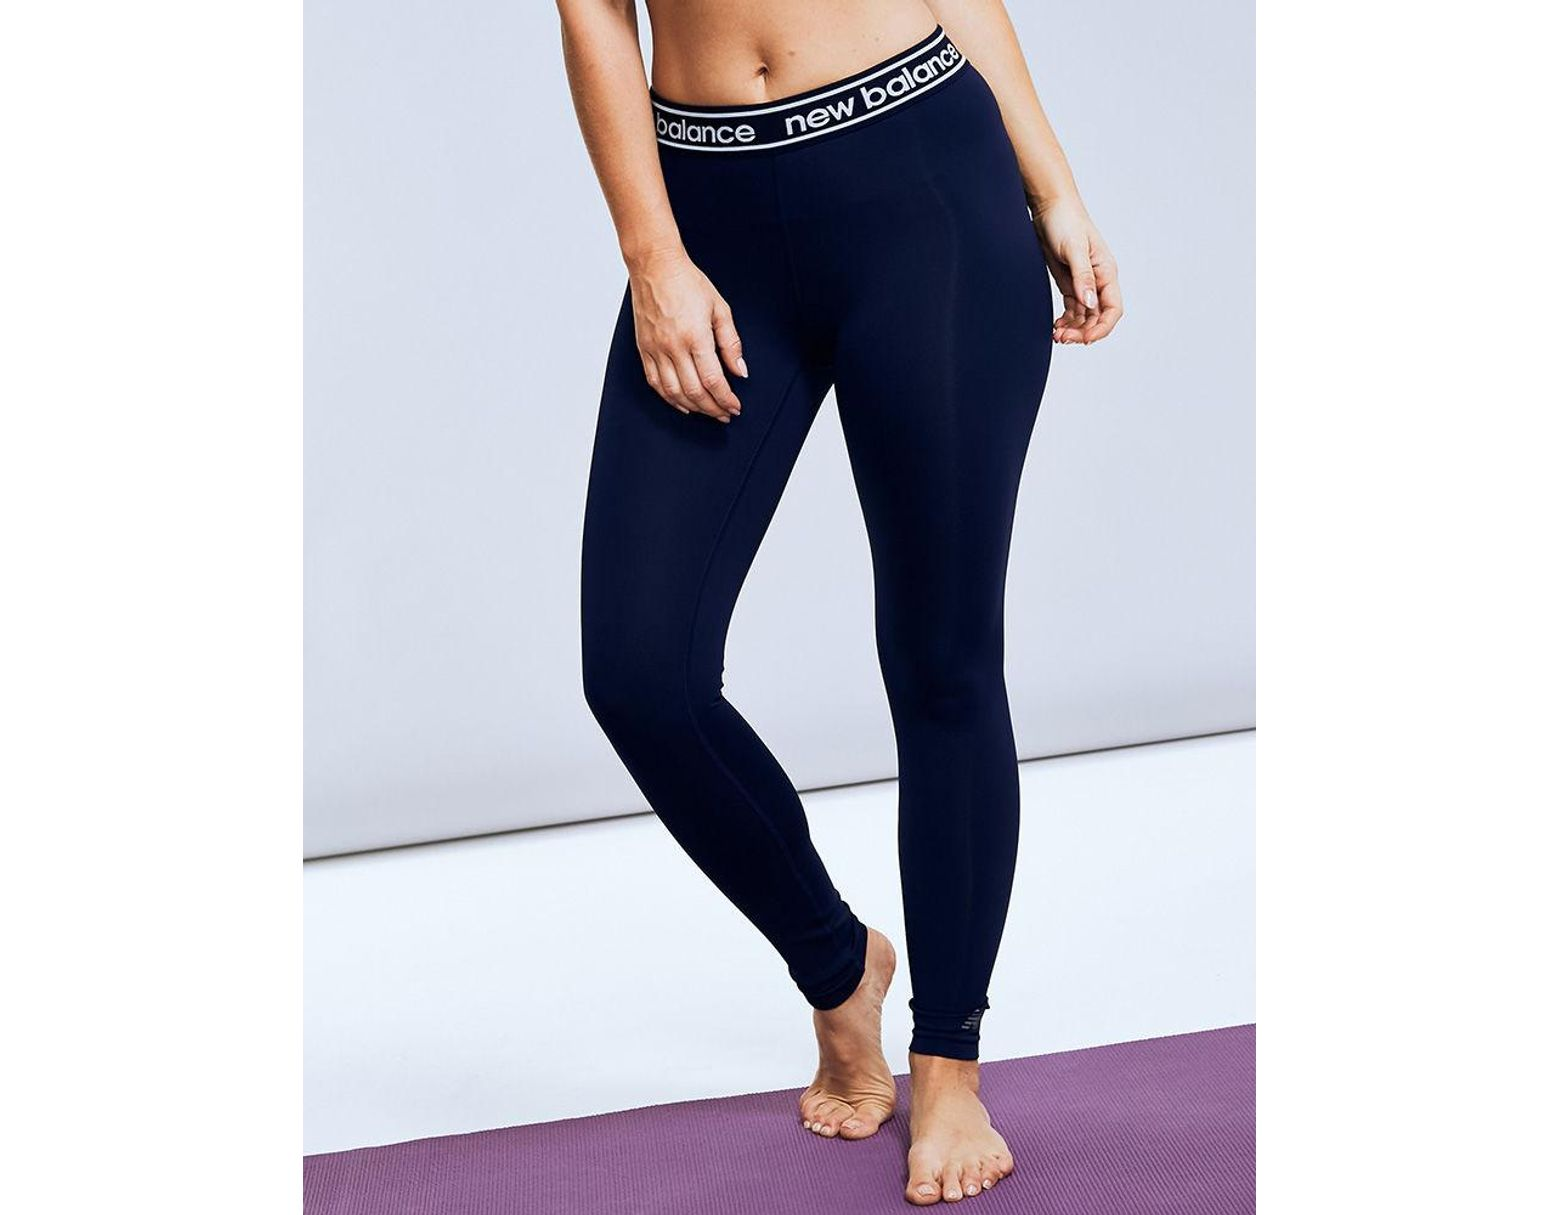 0c28880c9c479 New Balance Accelerate Tight in Blue - Lyst